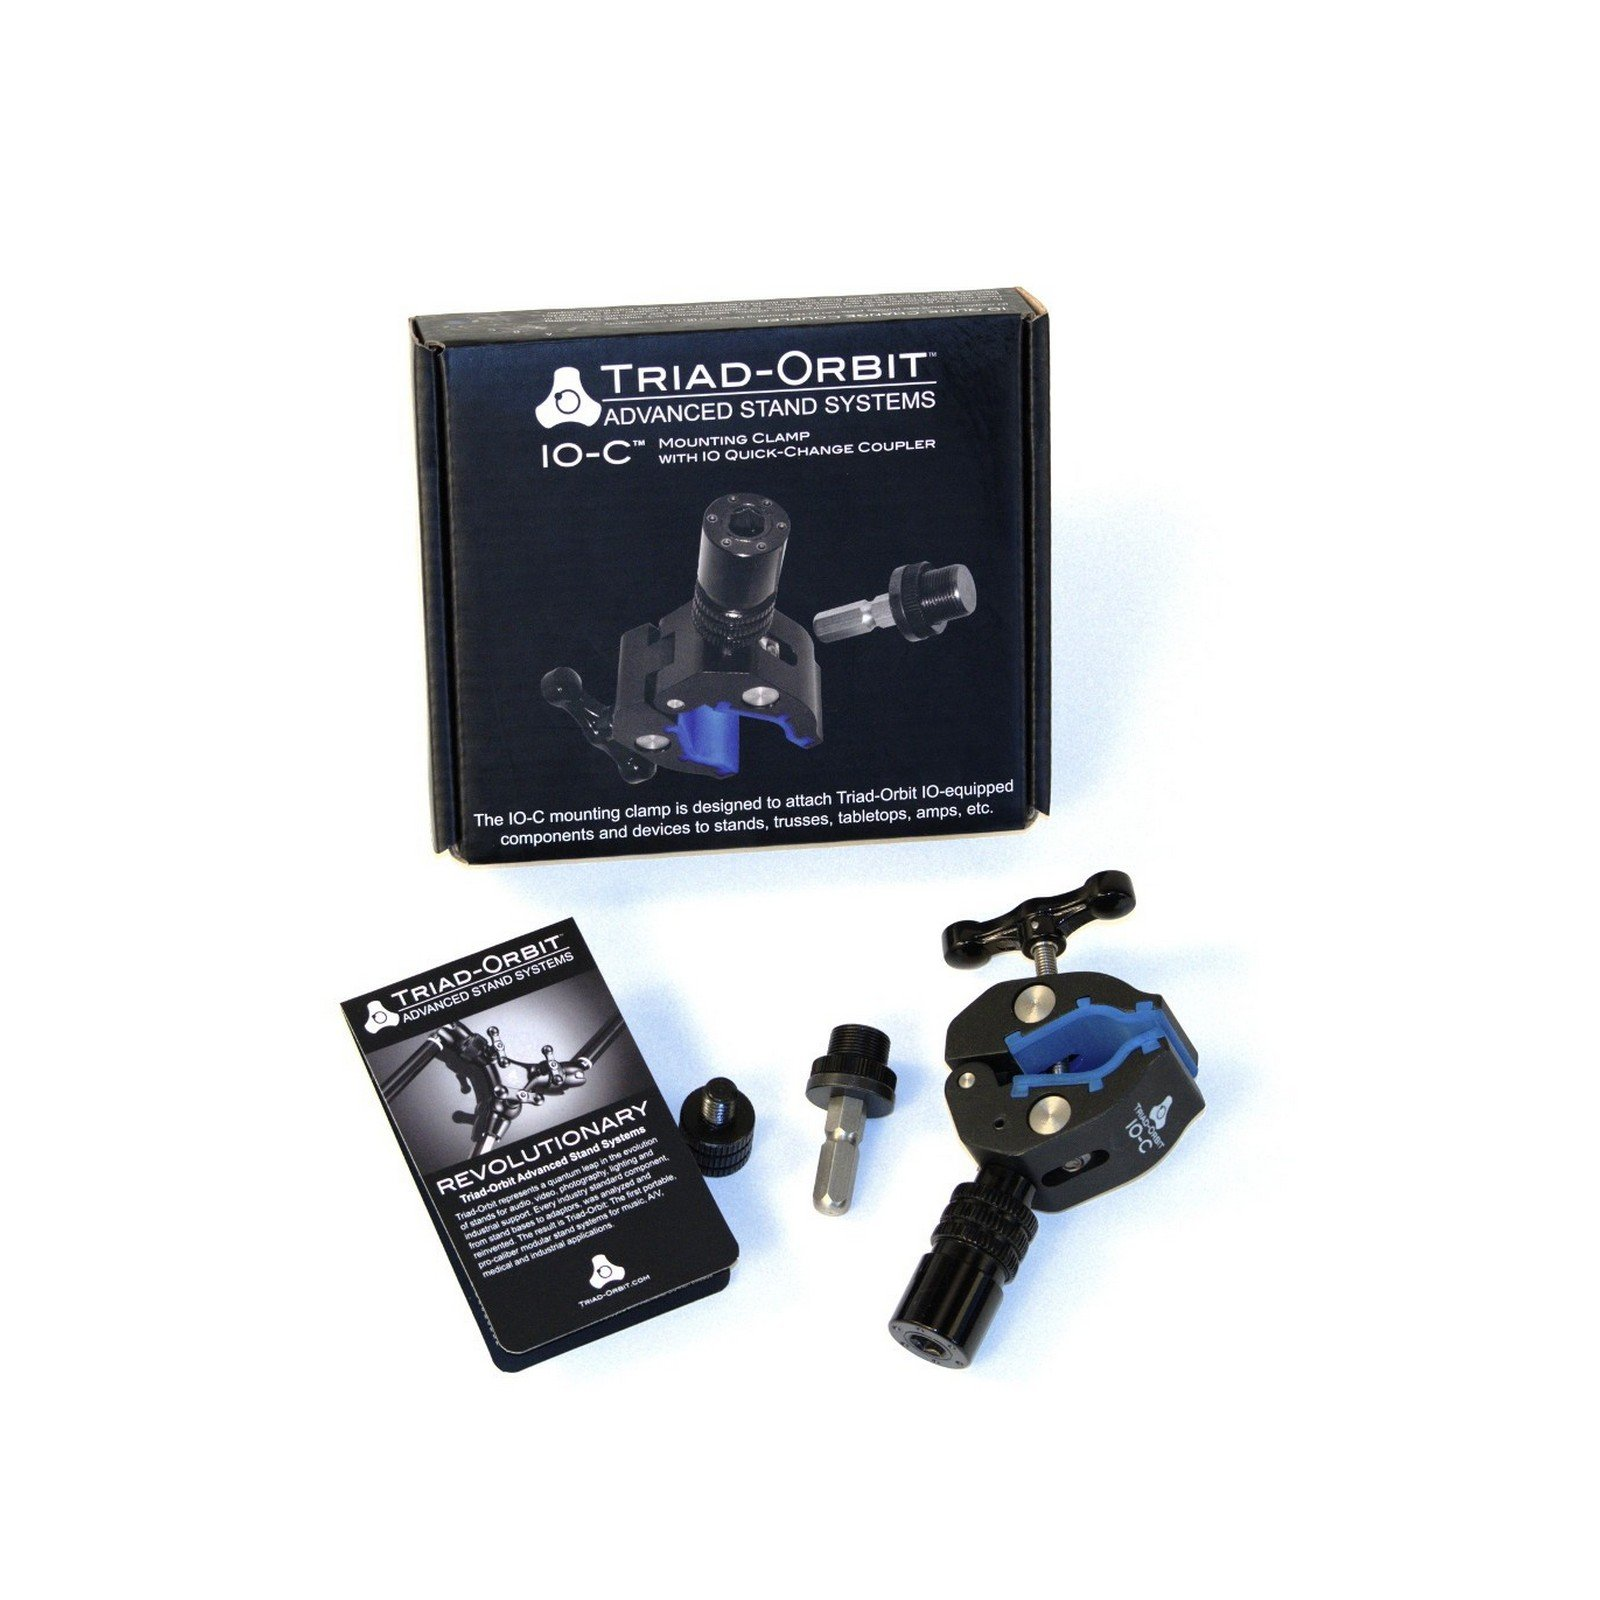 Triad Orbit IO-C | Mounting Clamp with Quick Change Coupler